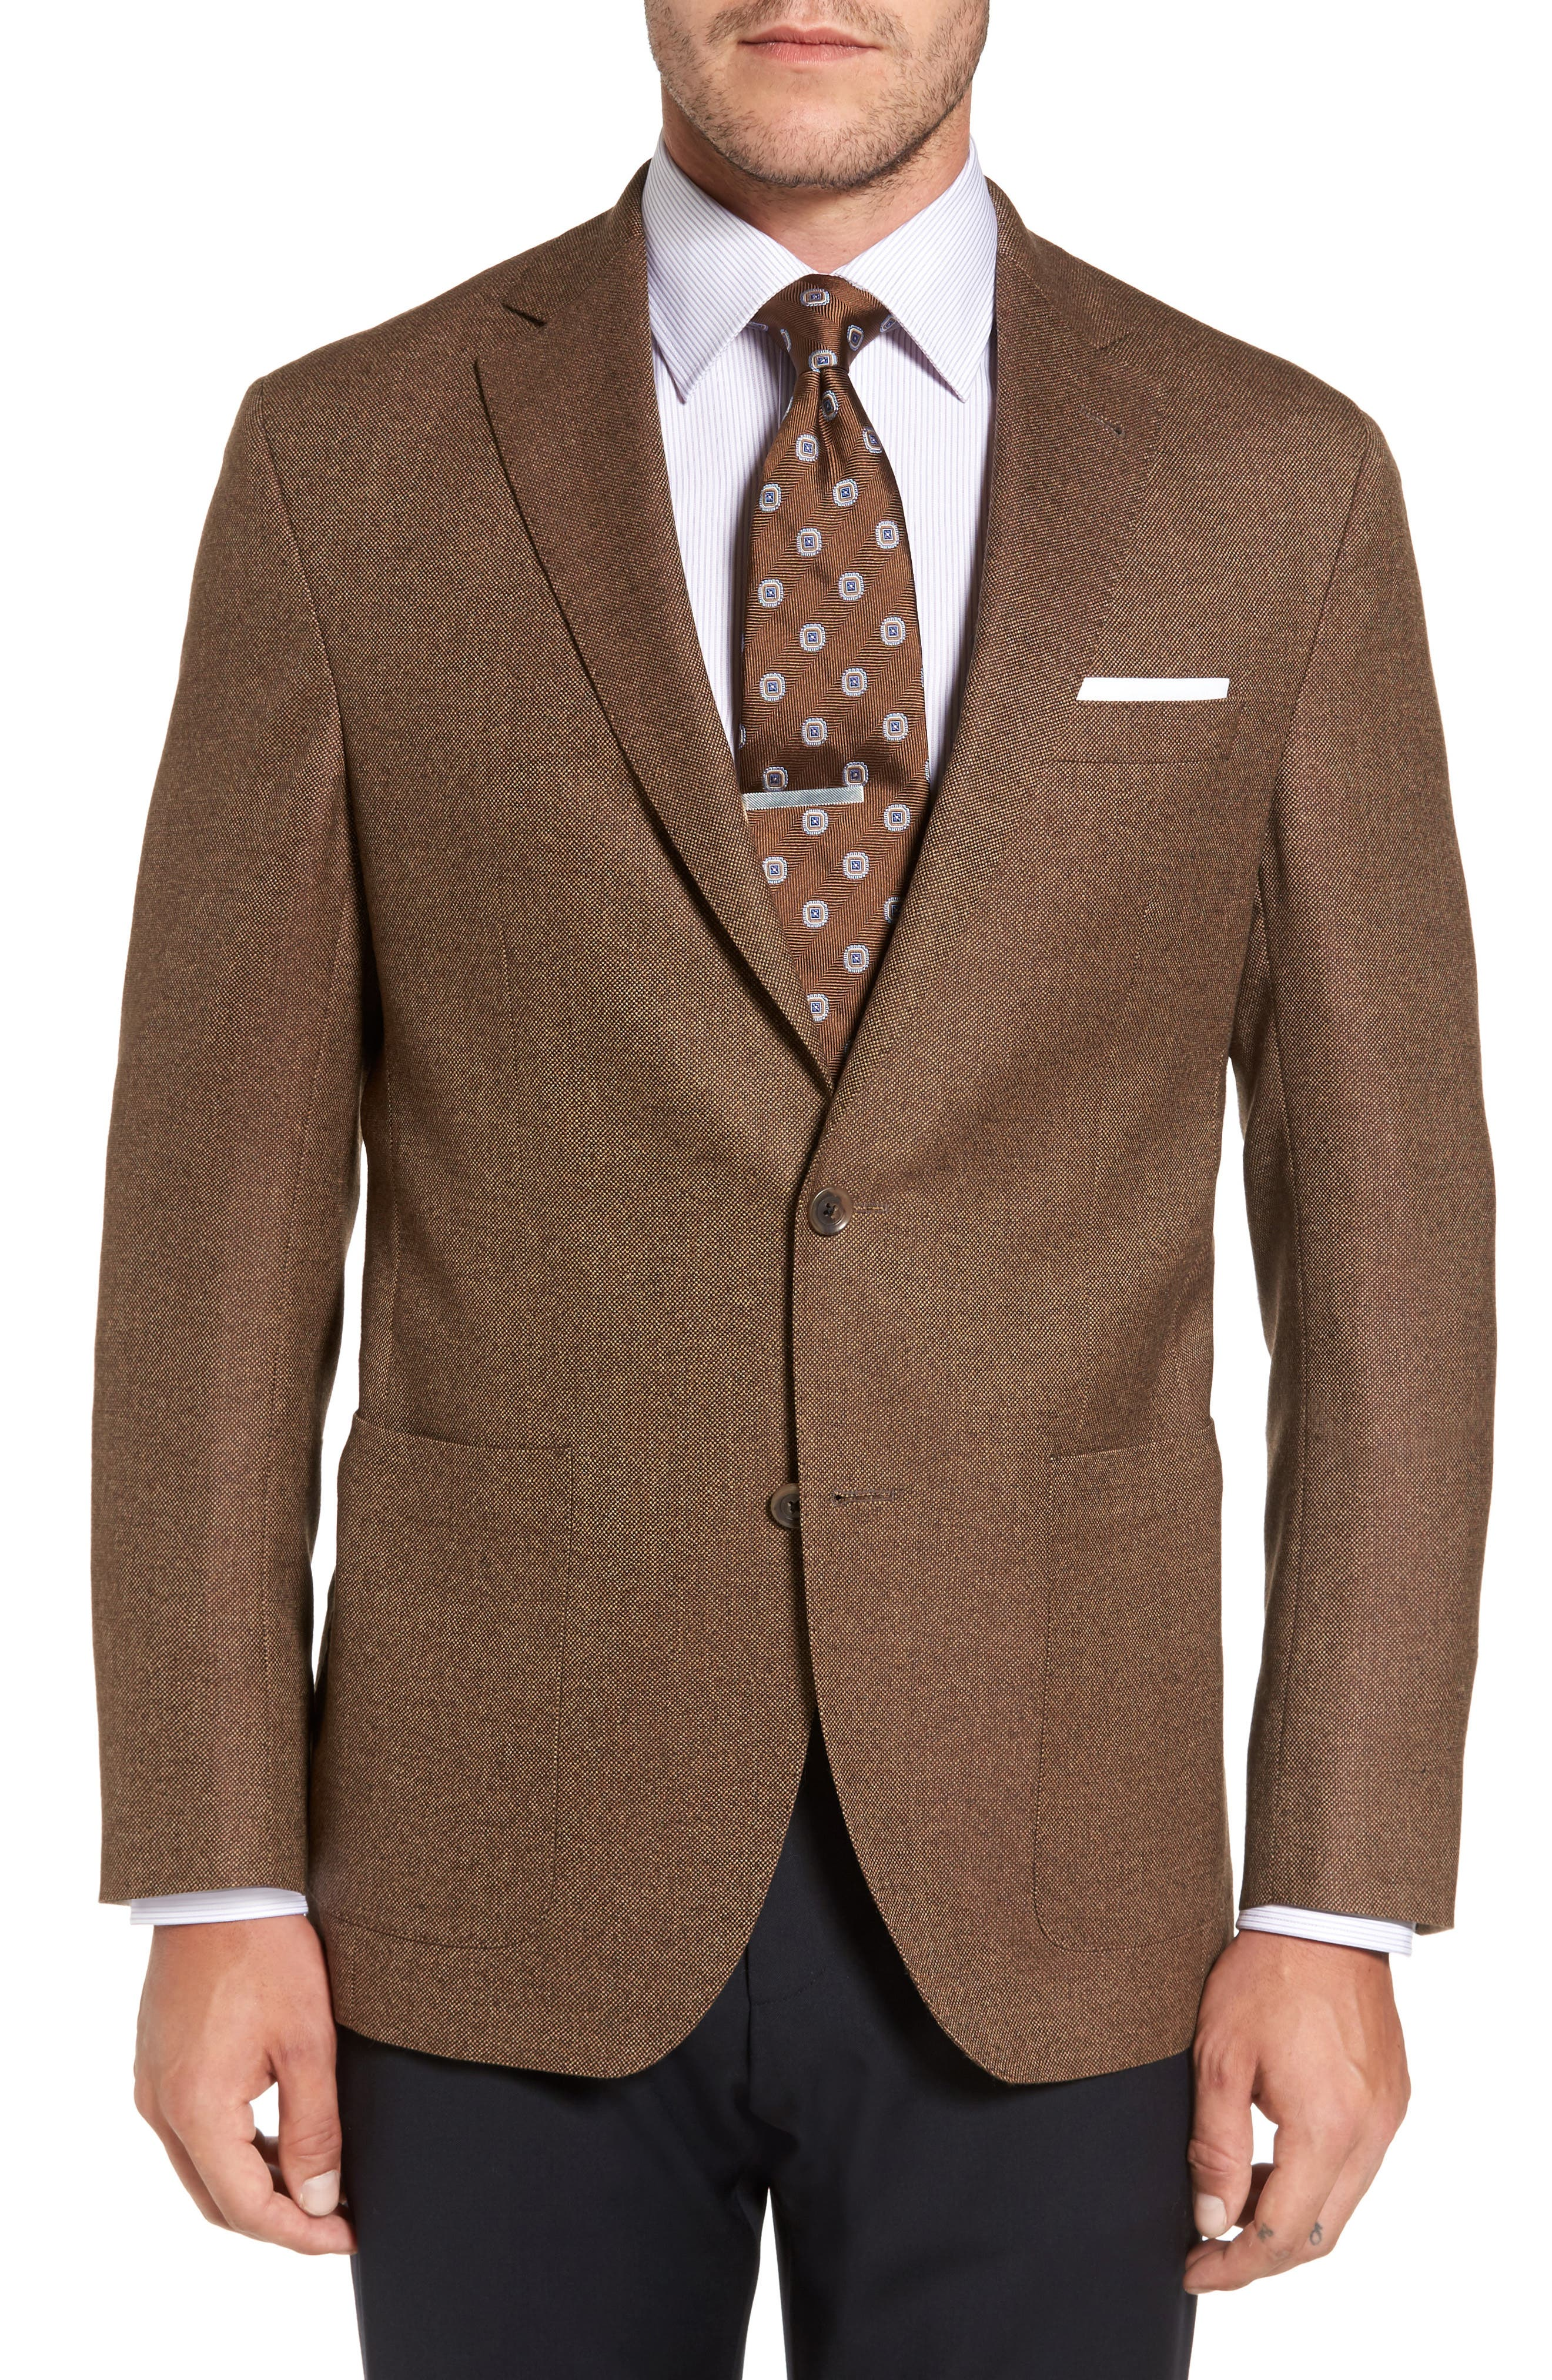 Aiden Classic Fit Wool Blazer,                         Main,                         color, Light Brown